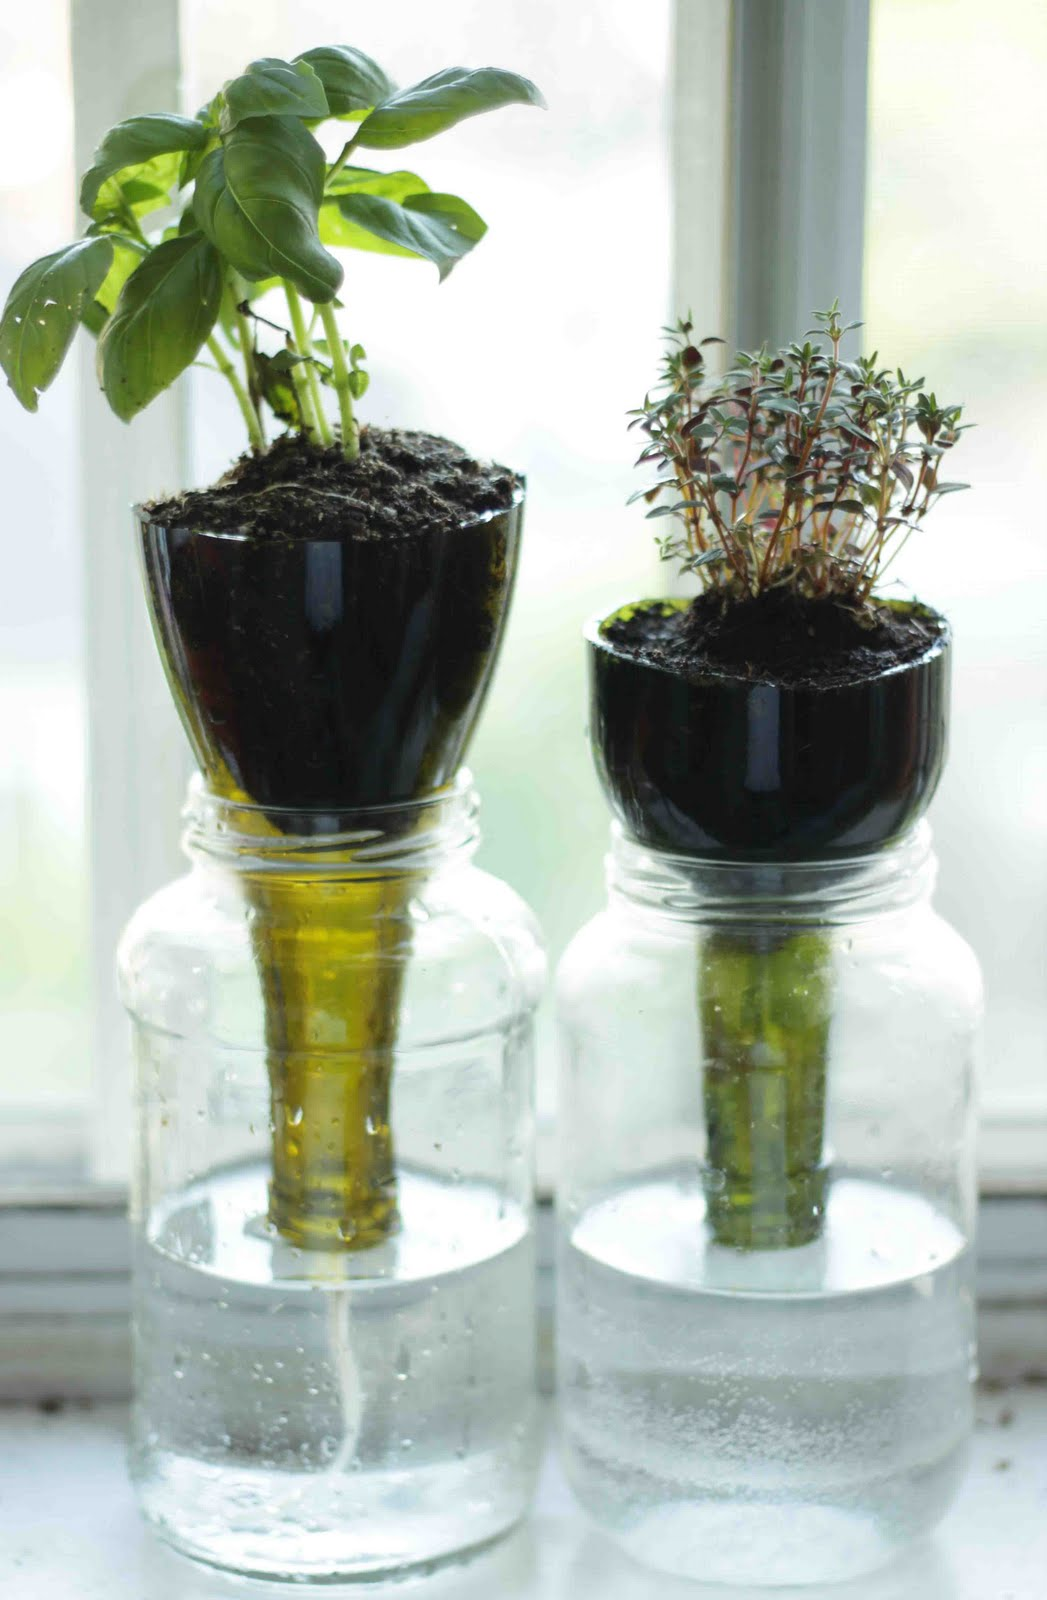 Little Projectiles: Self-Watering Glass Planters